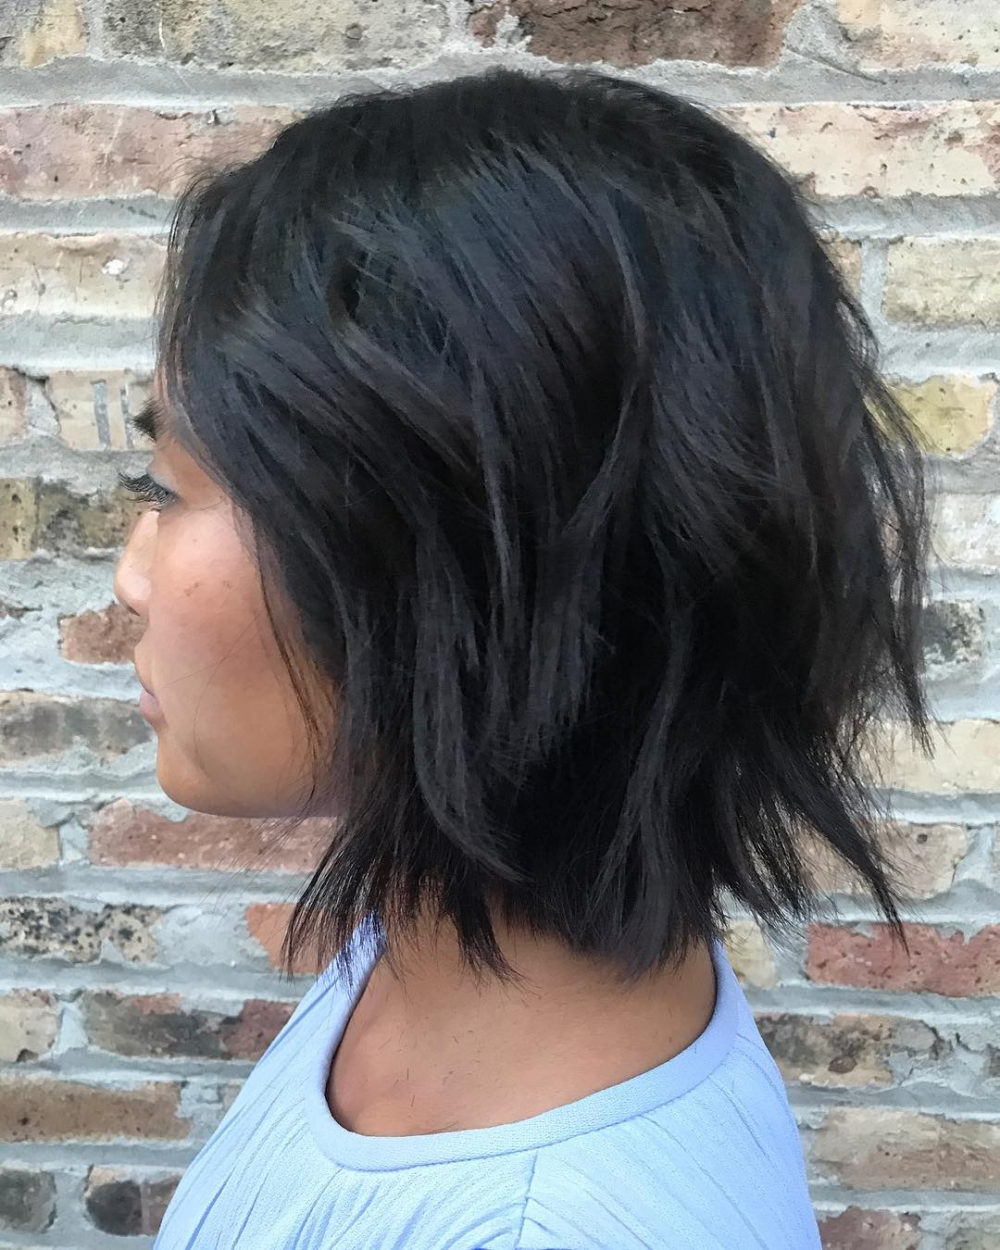 100 Hottest Choppy Bob Hairstyles For Women In 2019 Intended For Current Two Tone Disheveled Layered Hairstyles (View 2 of 20)